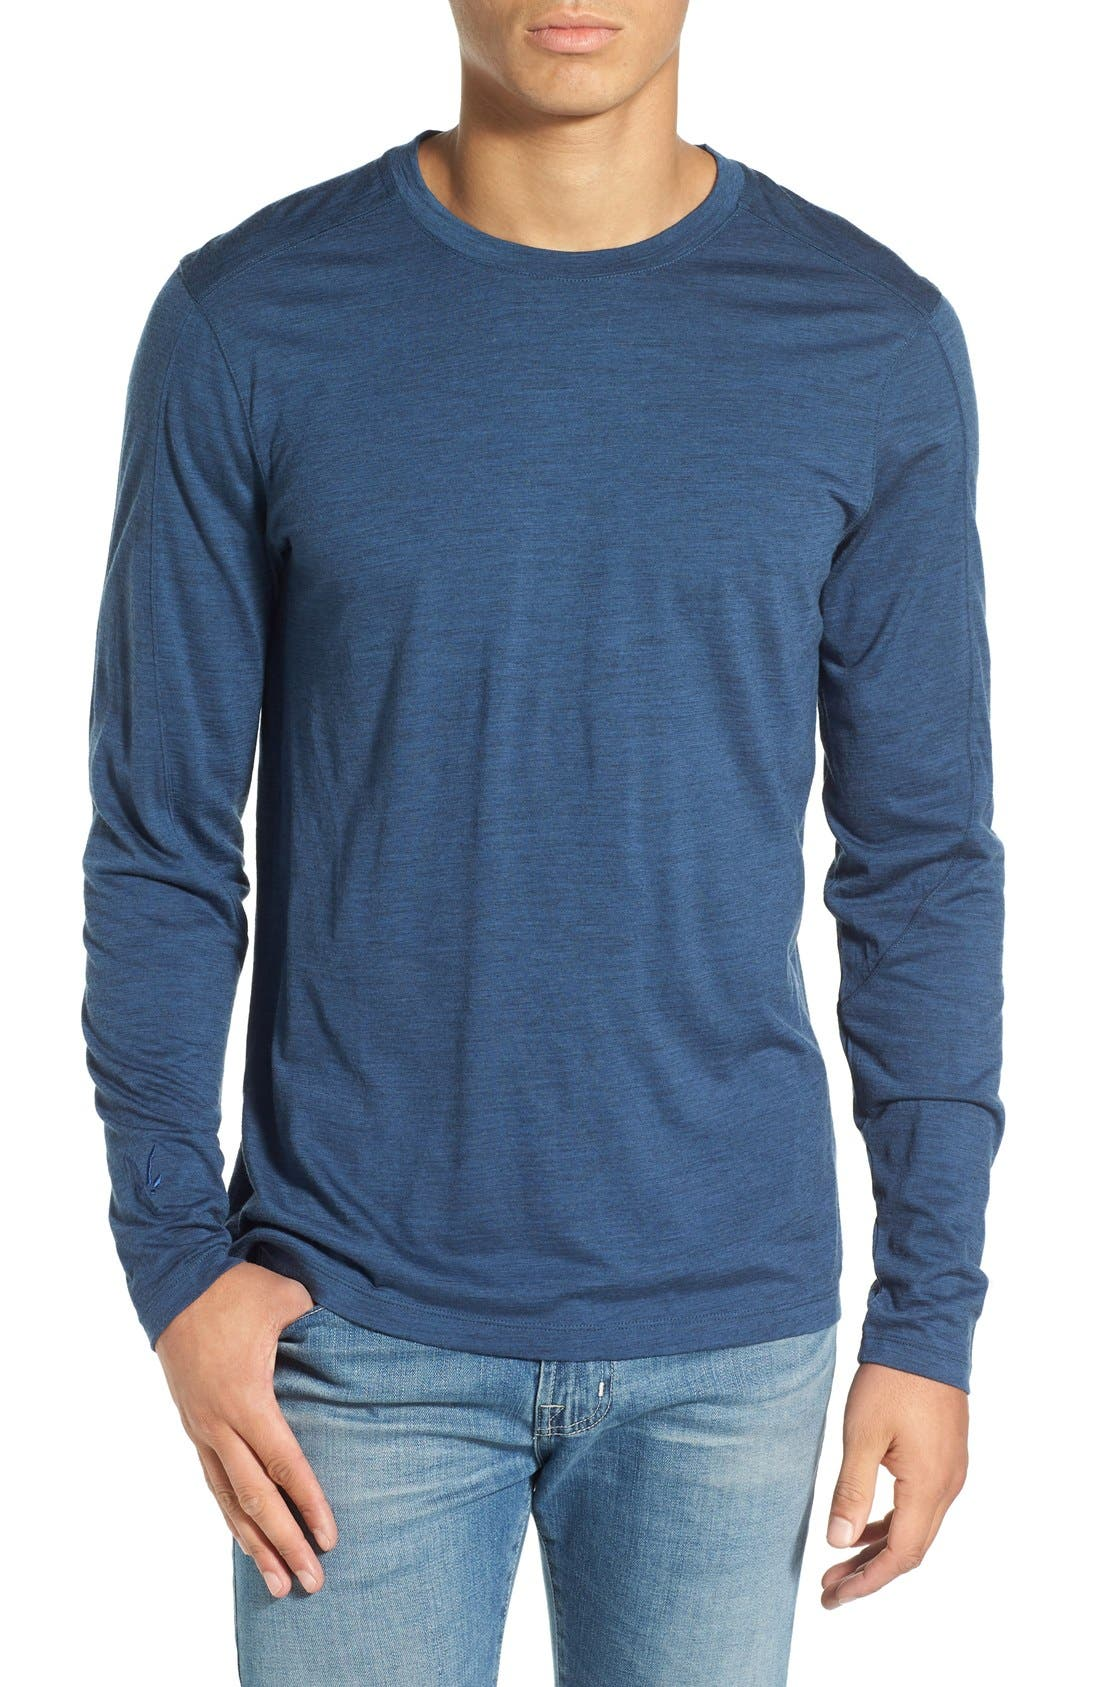 Main Image - ibex 'OD' Merino Wool Long Sleeve Crewneck T-Shirt